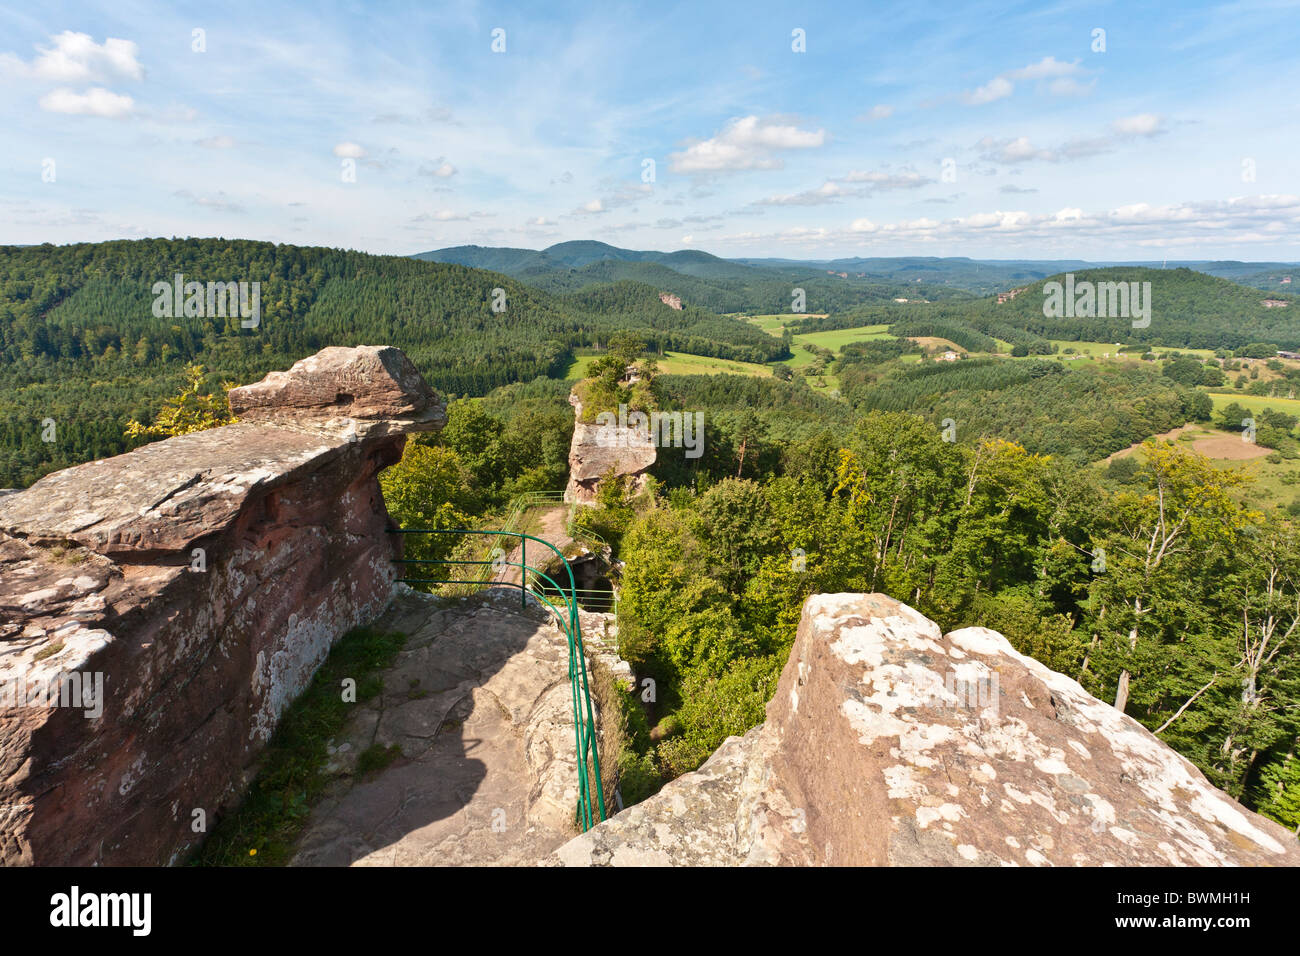 DRACHENFELS RUIN, DAHNER FELSENLAND, PFALZ FOREST, PFALZ, RHINELAND-PALATINATE, GERMANY Stock Photo